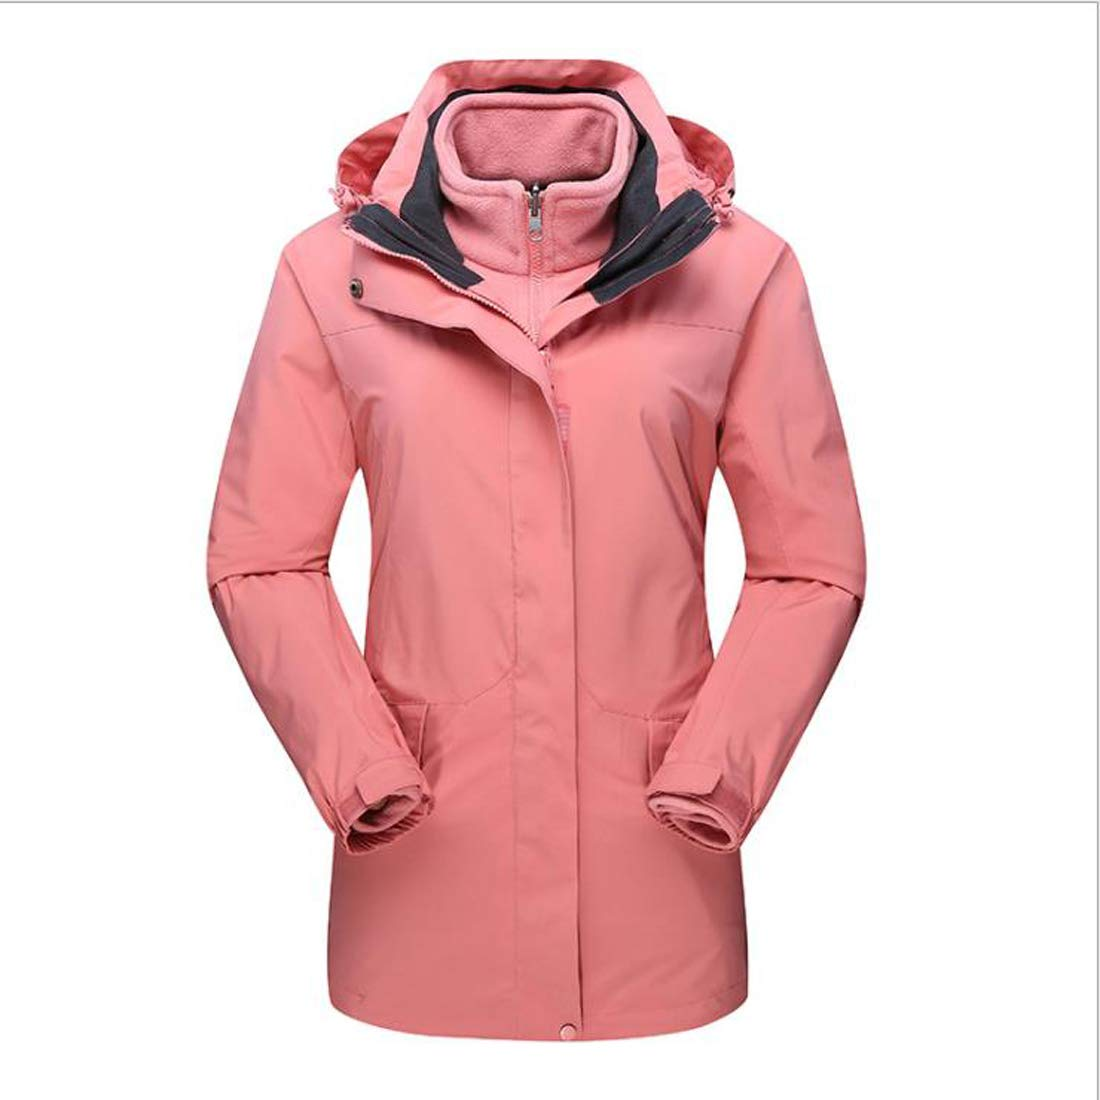 1 AUSWIEI Outdoor Ladies' Jacket, TwoPiece Long Section, Warm Winter Warm Padded Trench Coat (color   01, Size   XXL)